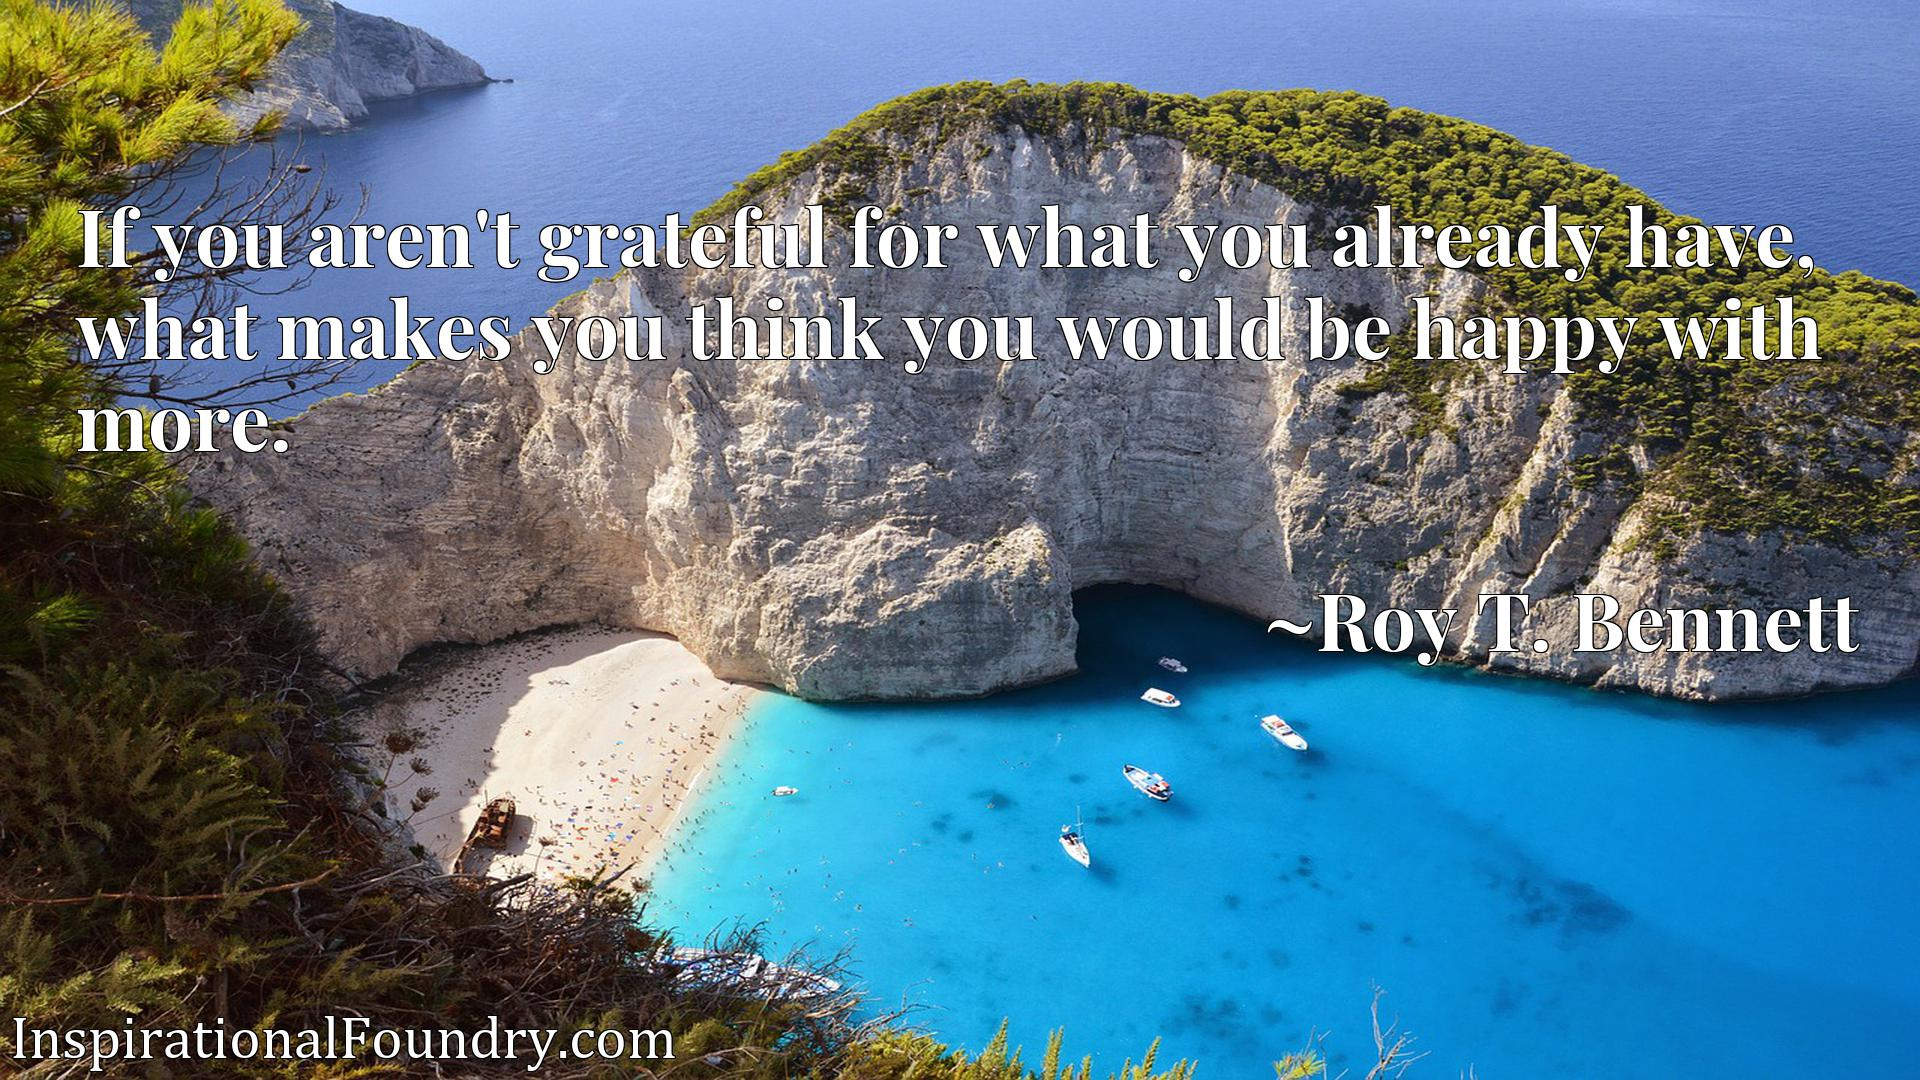 Quote Picture :If you aren't grateful for what you already have, what makes you think you would be happy with more.